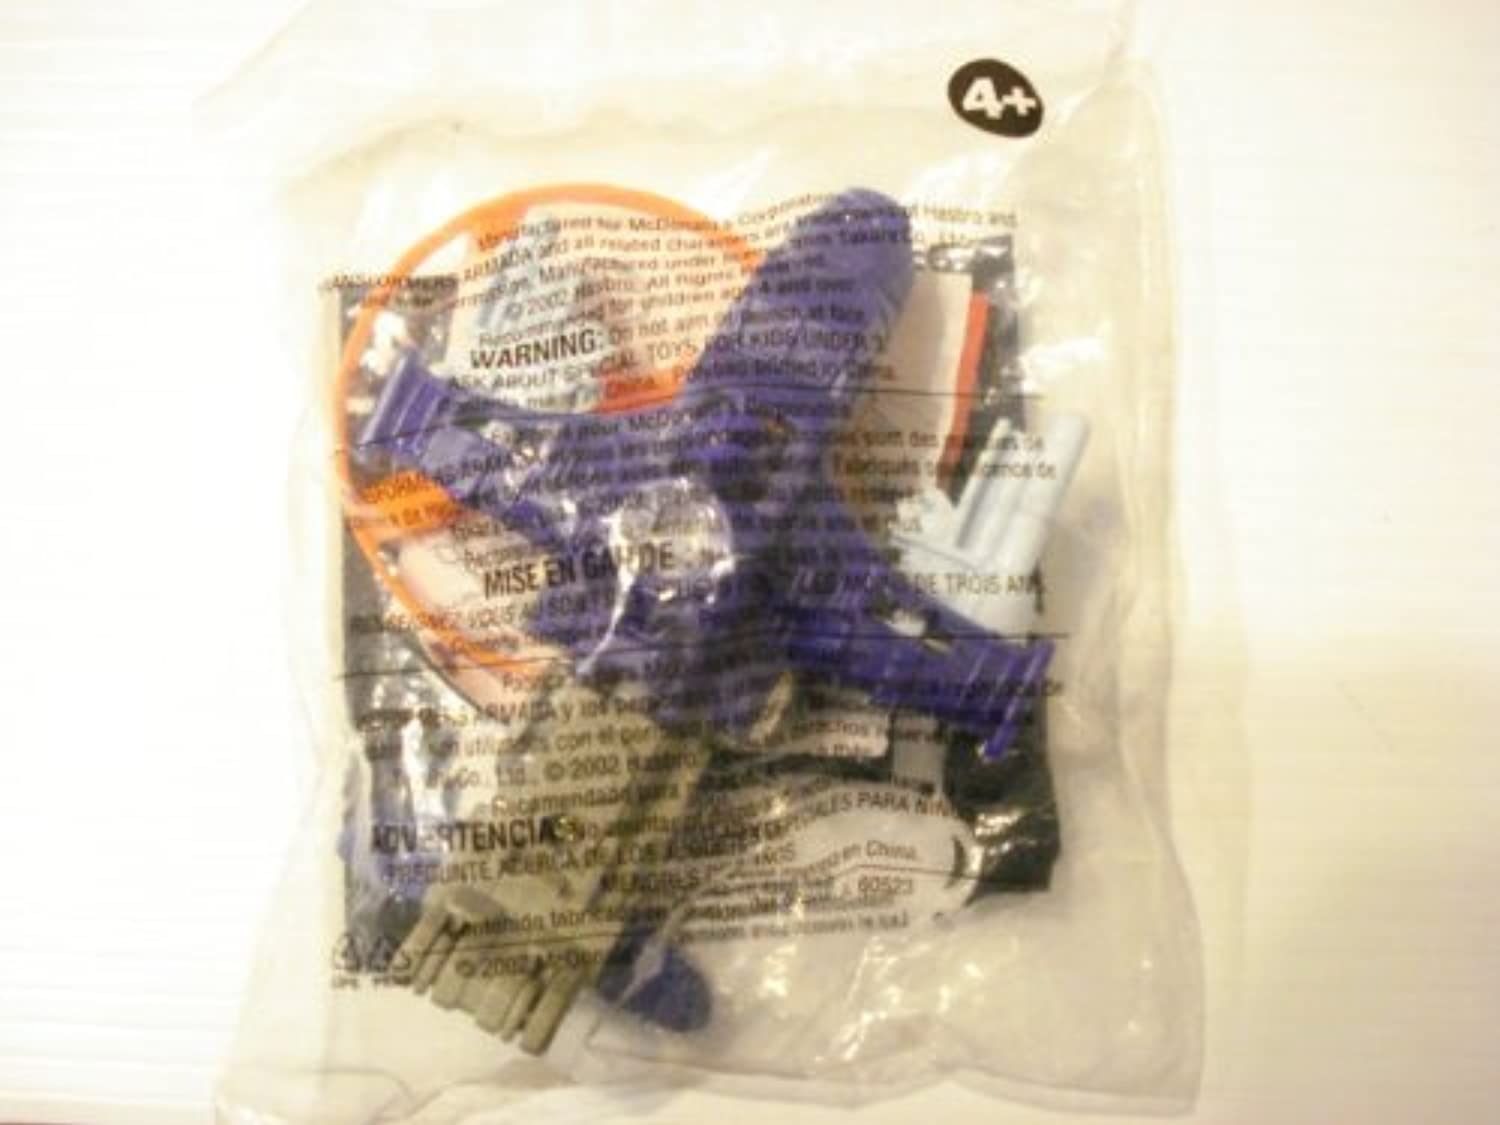 McDonalds Happy Meal Toy  Transformers  Cyclonus,  4, 2002